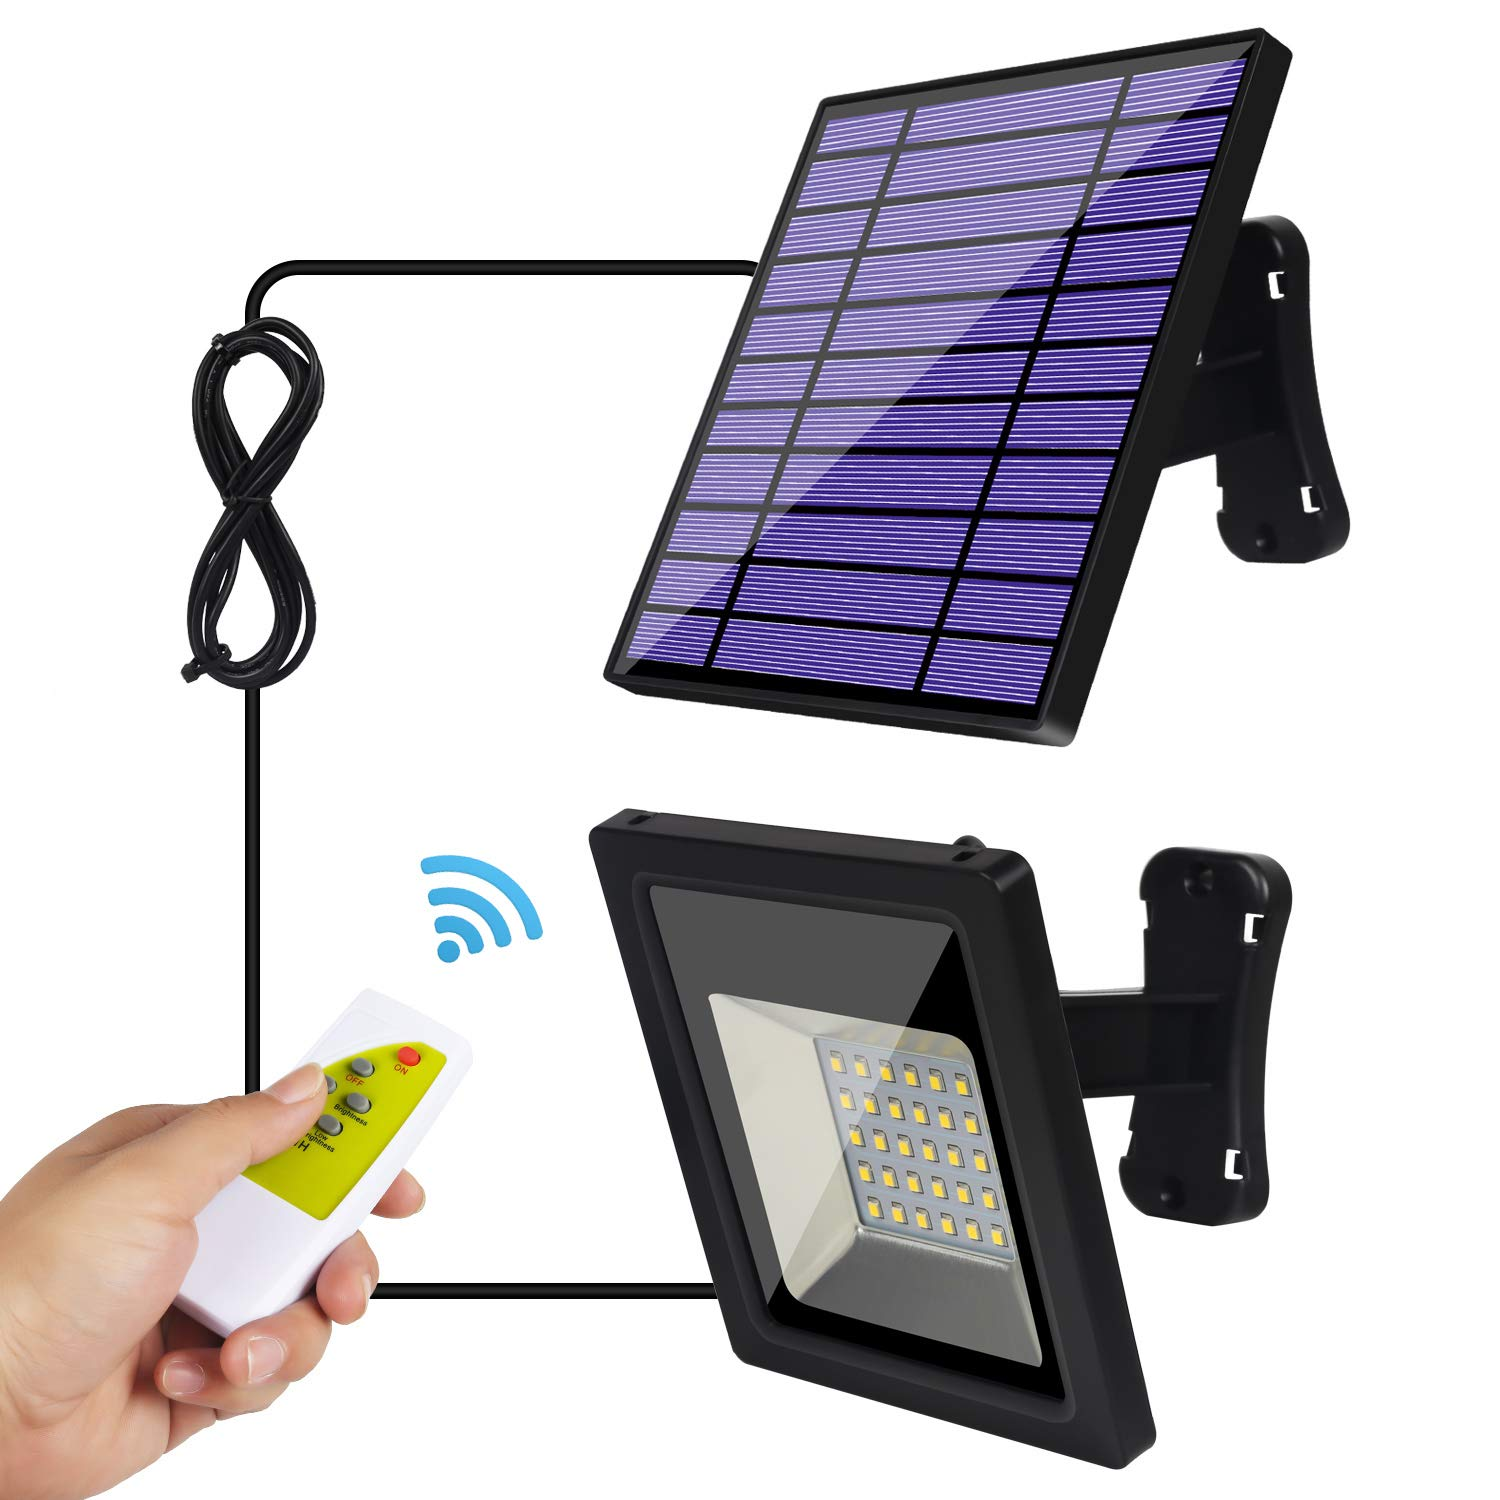 Solar Lights Outdoor IP65 Waterproof Solar Flood Lights 30 LED Spotlight Remote Control 9.2Ft Cord Easy-to-Install Security Lights with Adjustable Solar Panel for Front Door Yard Deck Garage